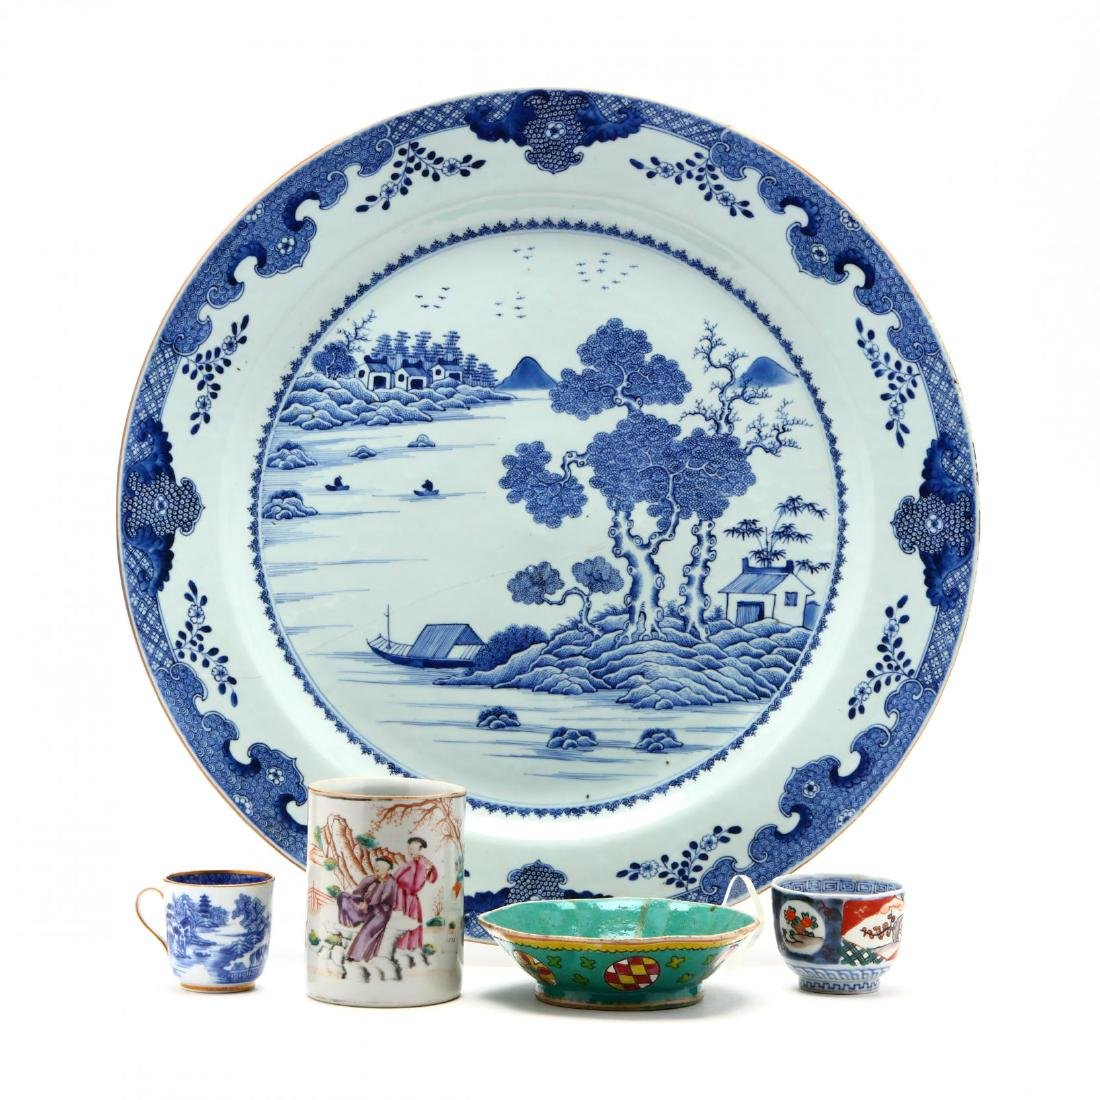 A Large Chinese Charger and Decorative Porcelain Items